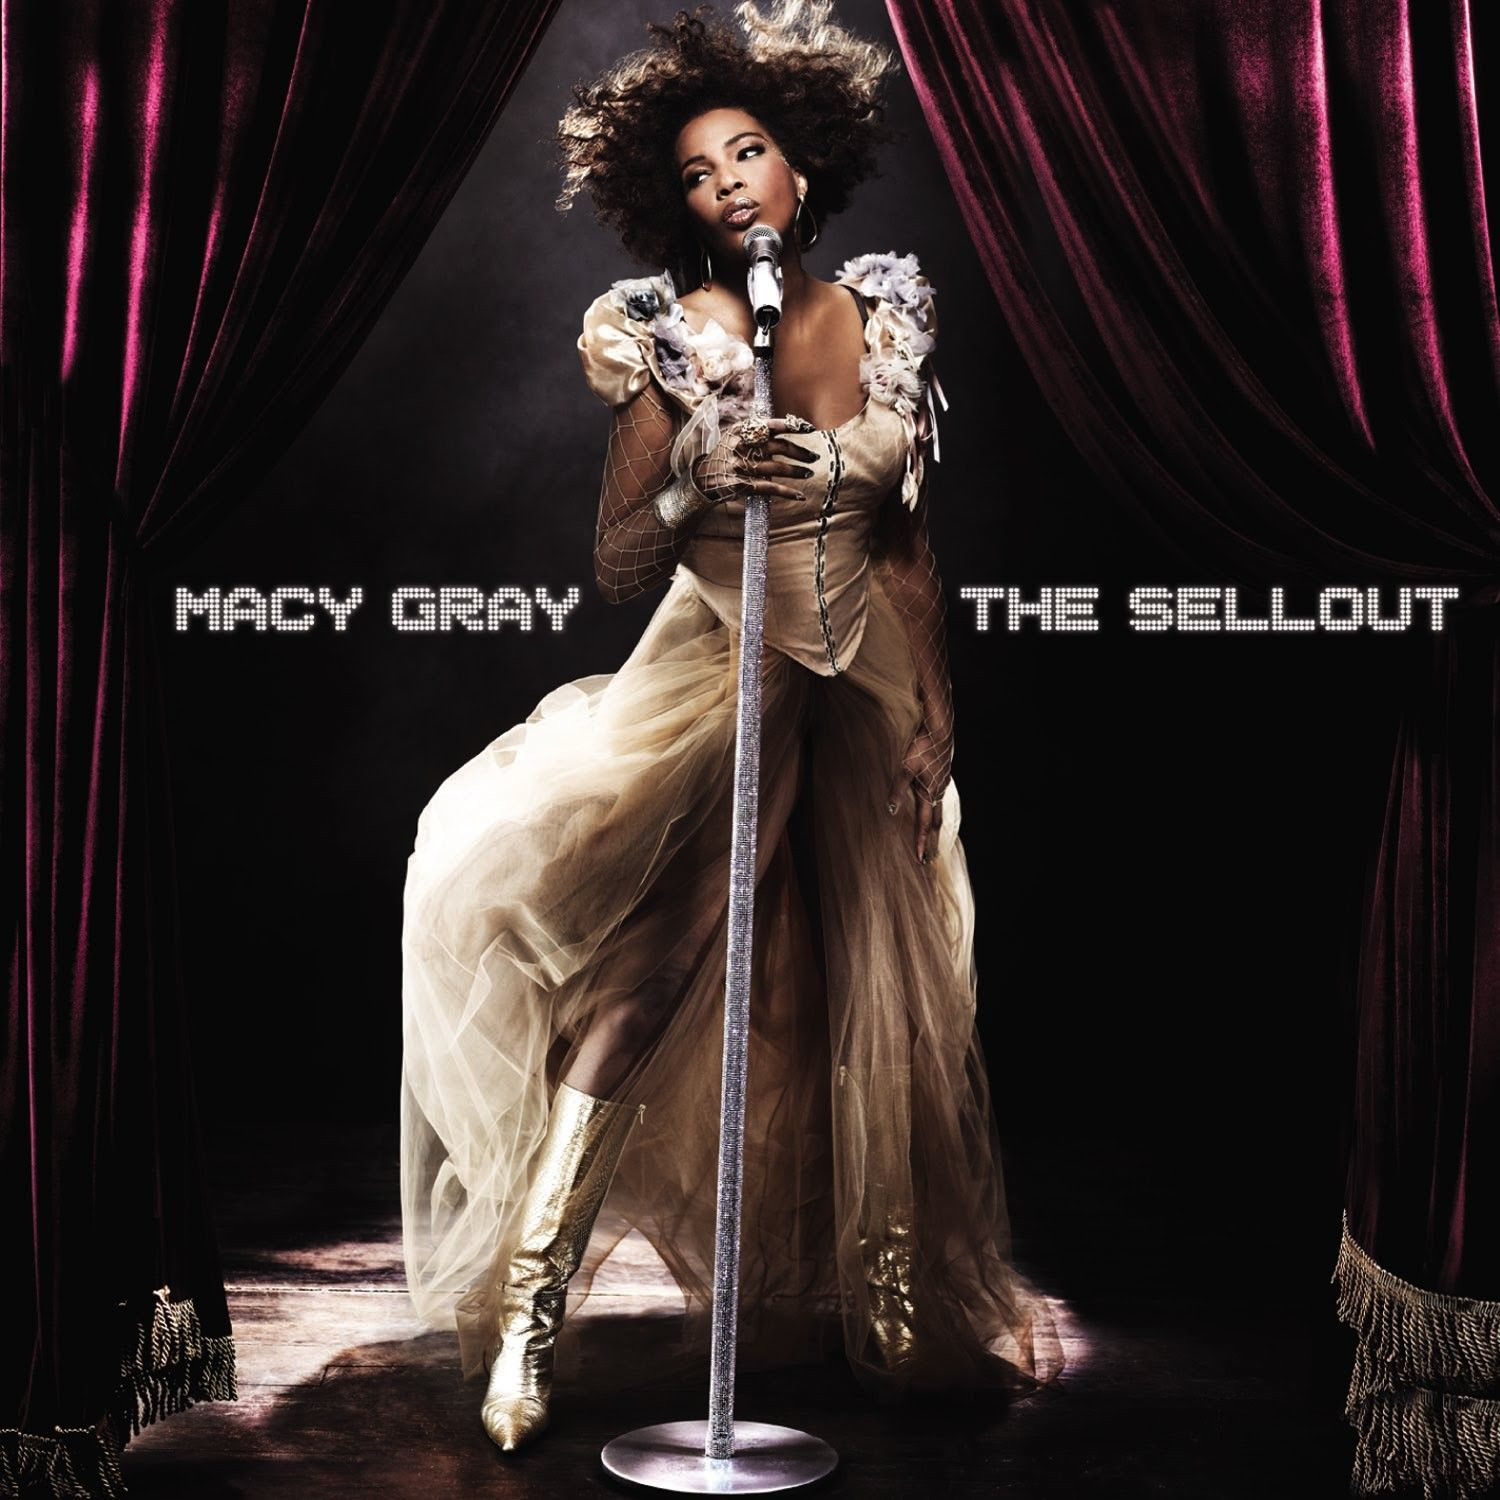 Macy Gray - The Sellout album cover